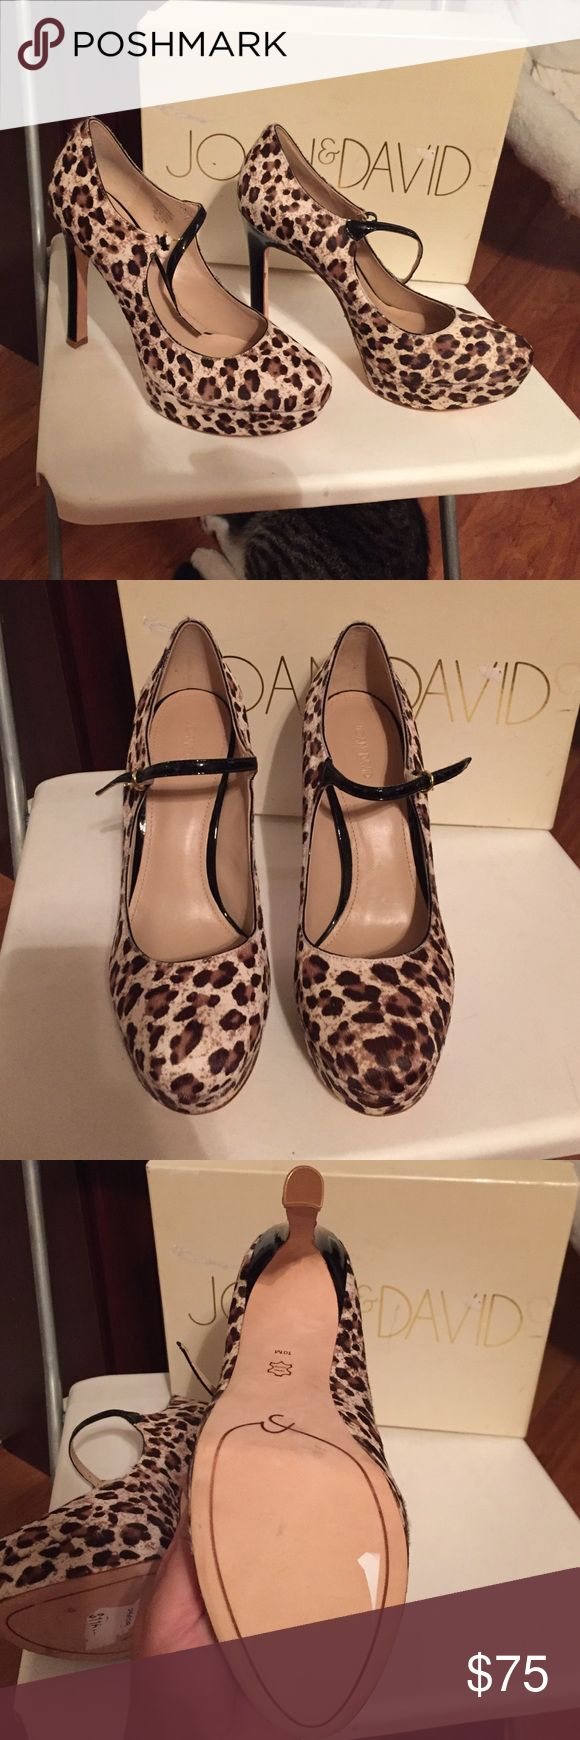 Snow leopard print Joan & David heels Never before worn Joan & David snow leopard print Mary Jane heels. Not good if you have a wide foot like me. They may run a bit on the small side....original price sticker still partially attached on the bottom where you can see they were originally $116 Joan & David Shoes Heels